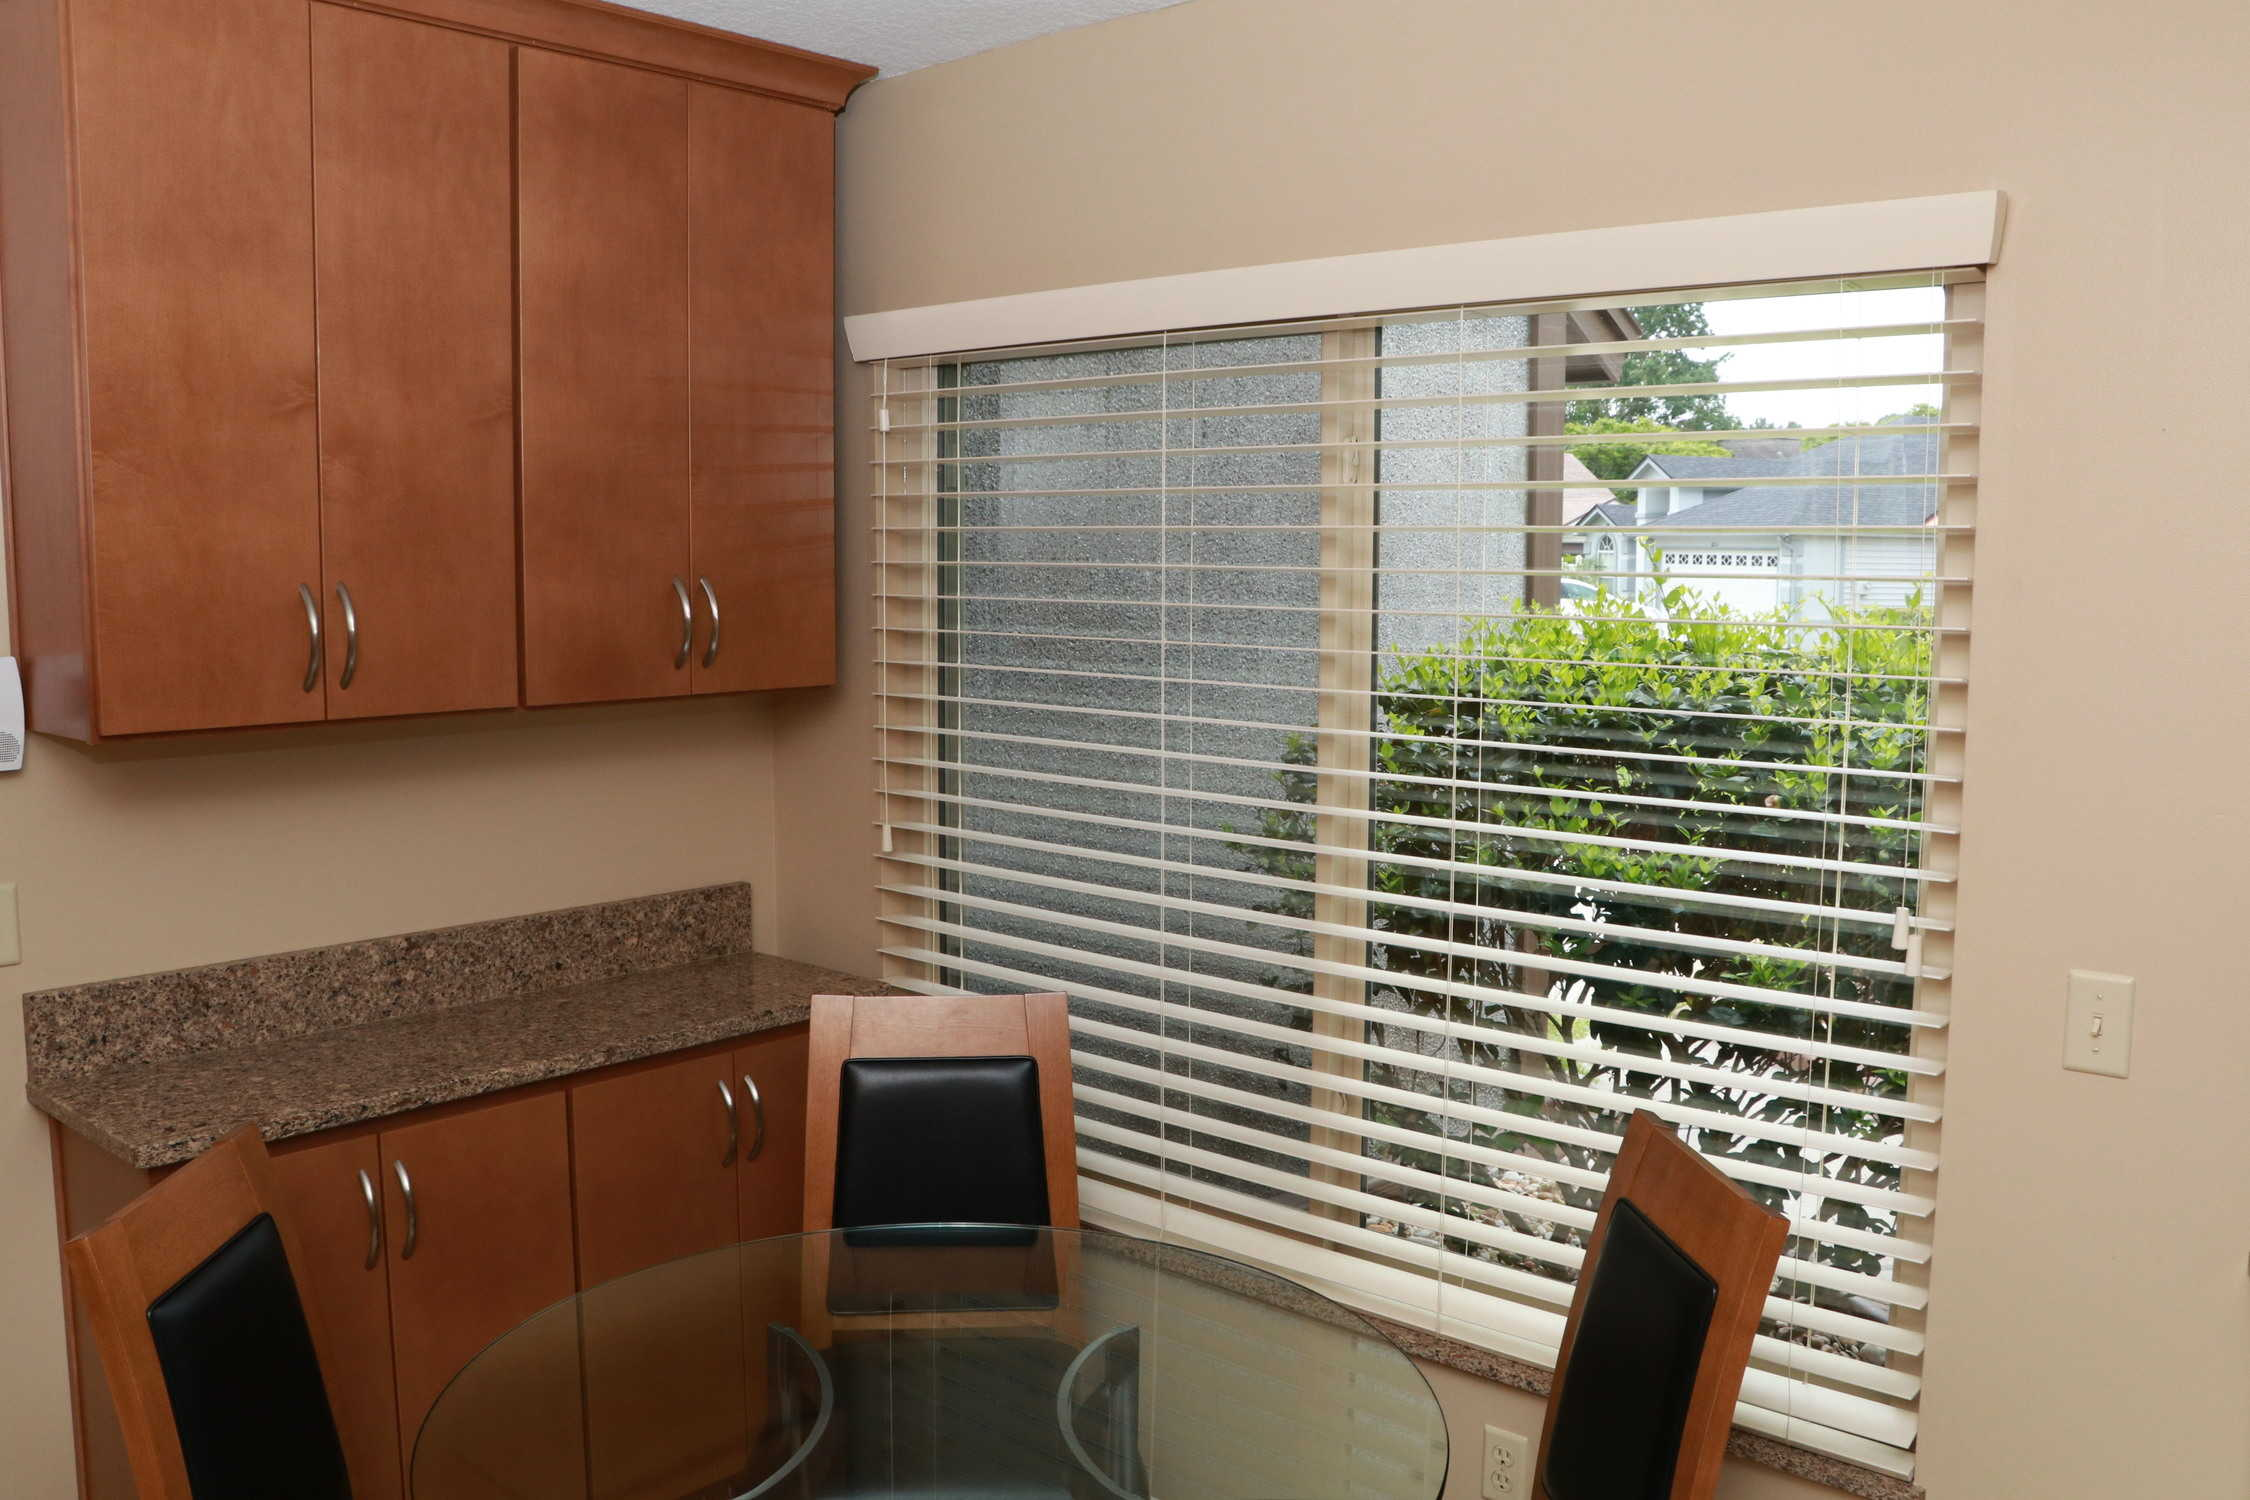 ma serving hampton custom me design store southern blinds fabric vertical blind and hampshire new nh speaker